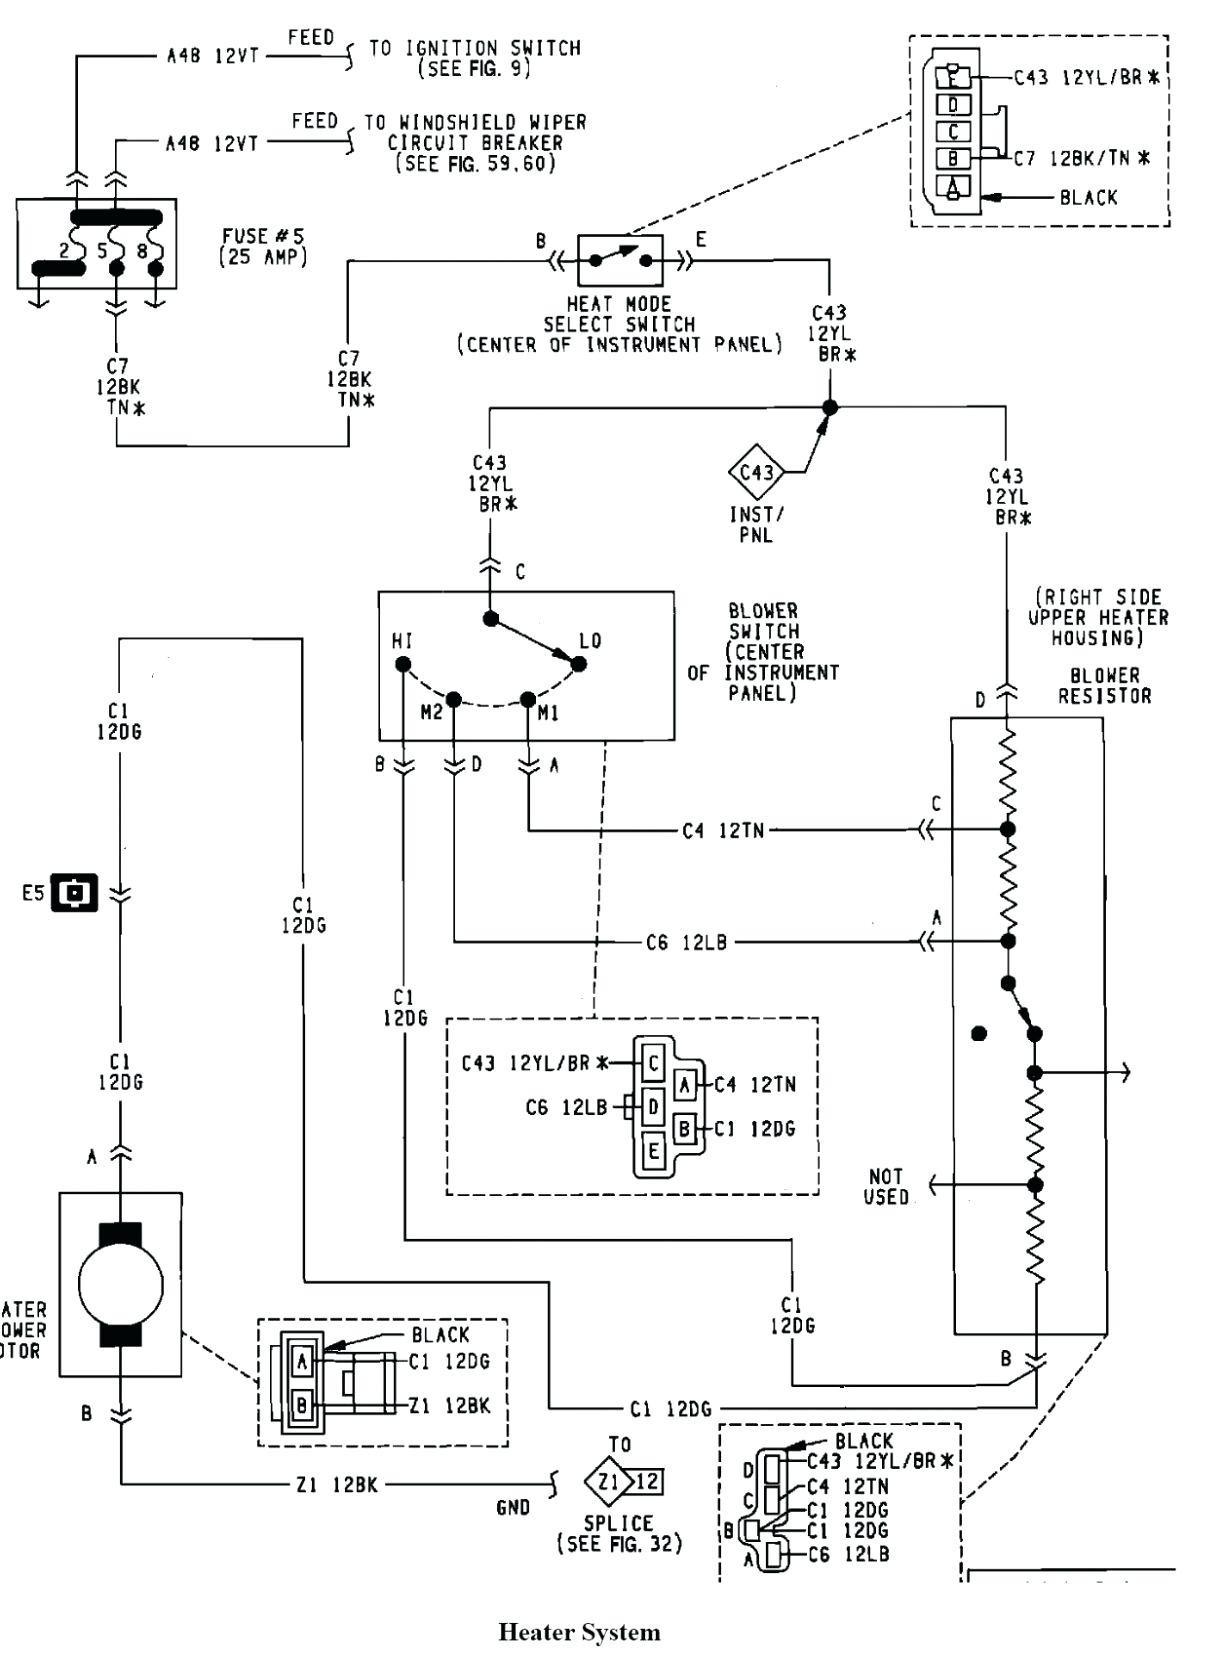 Diagram 2010 Jeep Jk Wrangler Wiring Diagram Full Version Hd Quality Wiring Diagram Leafdiagramsl Wecsrl It